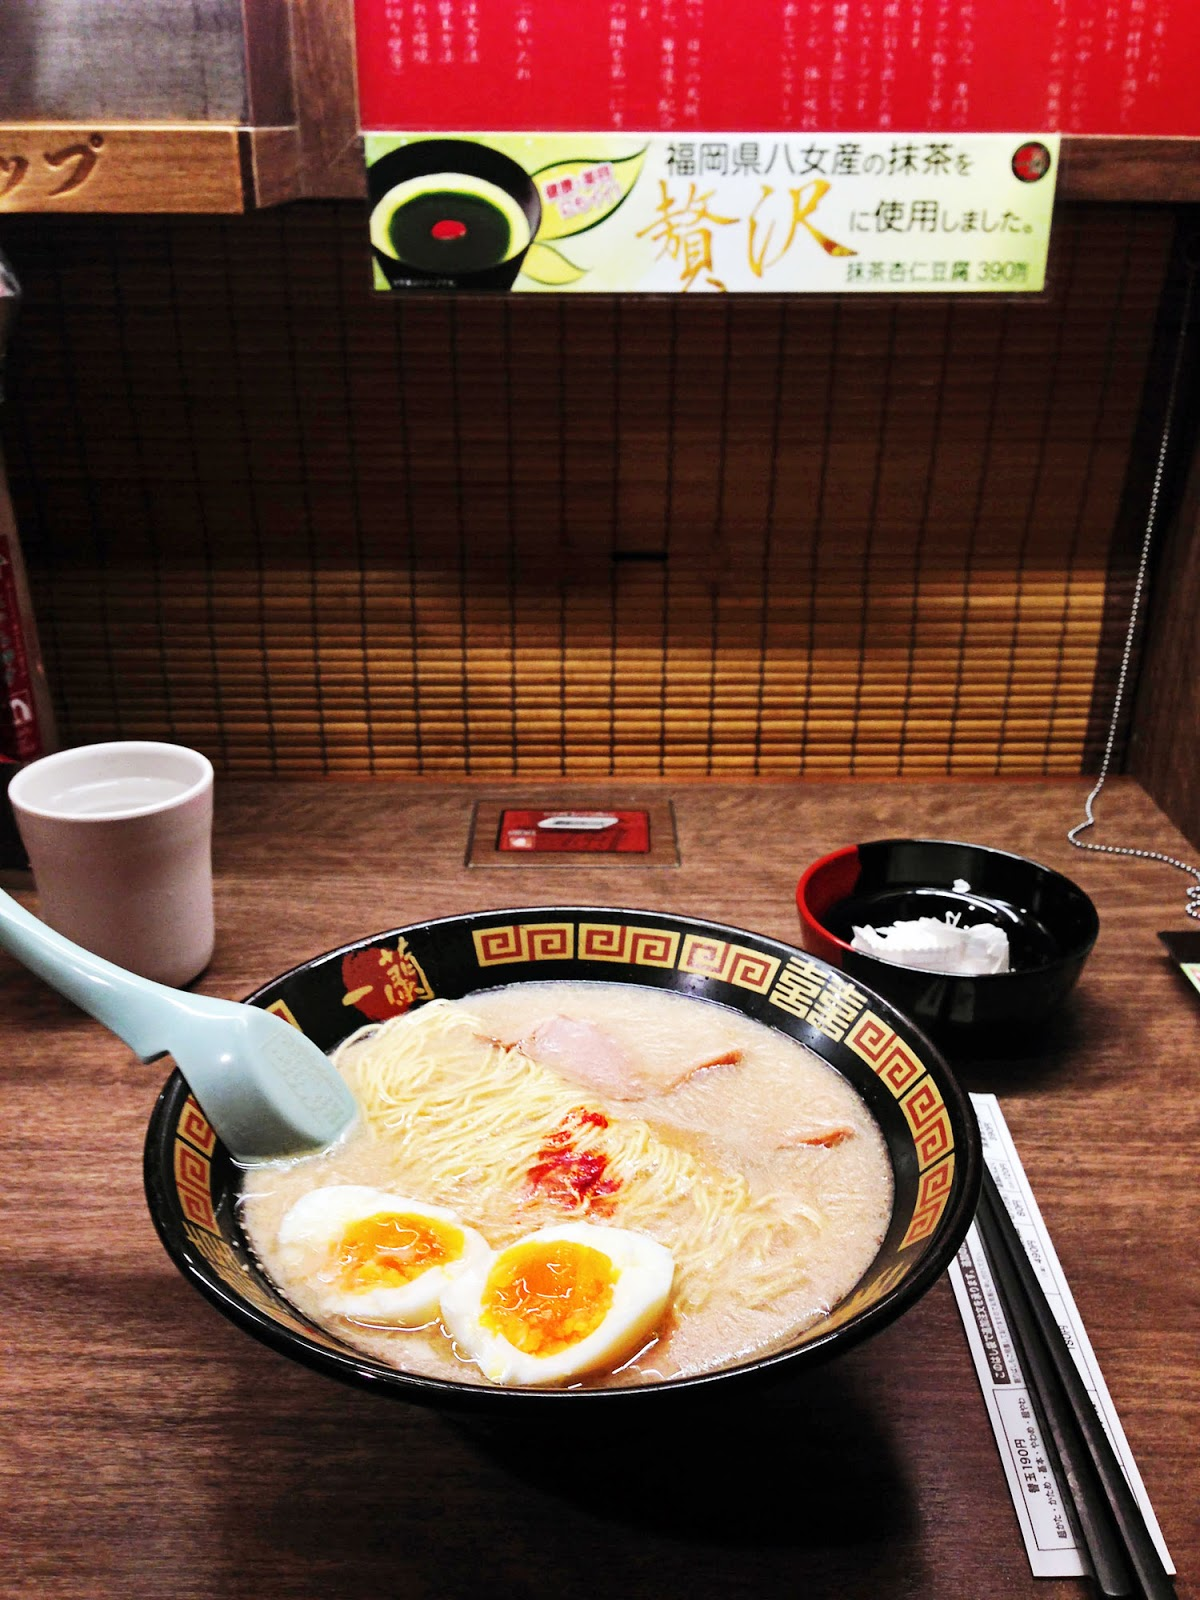 Ichiran Ramen: A Dining Experience without any Human Interaction - Tonkotsu Ramen